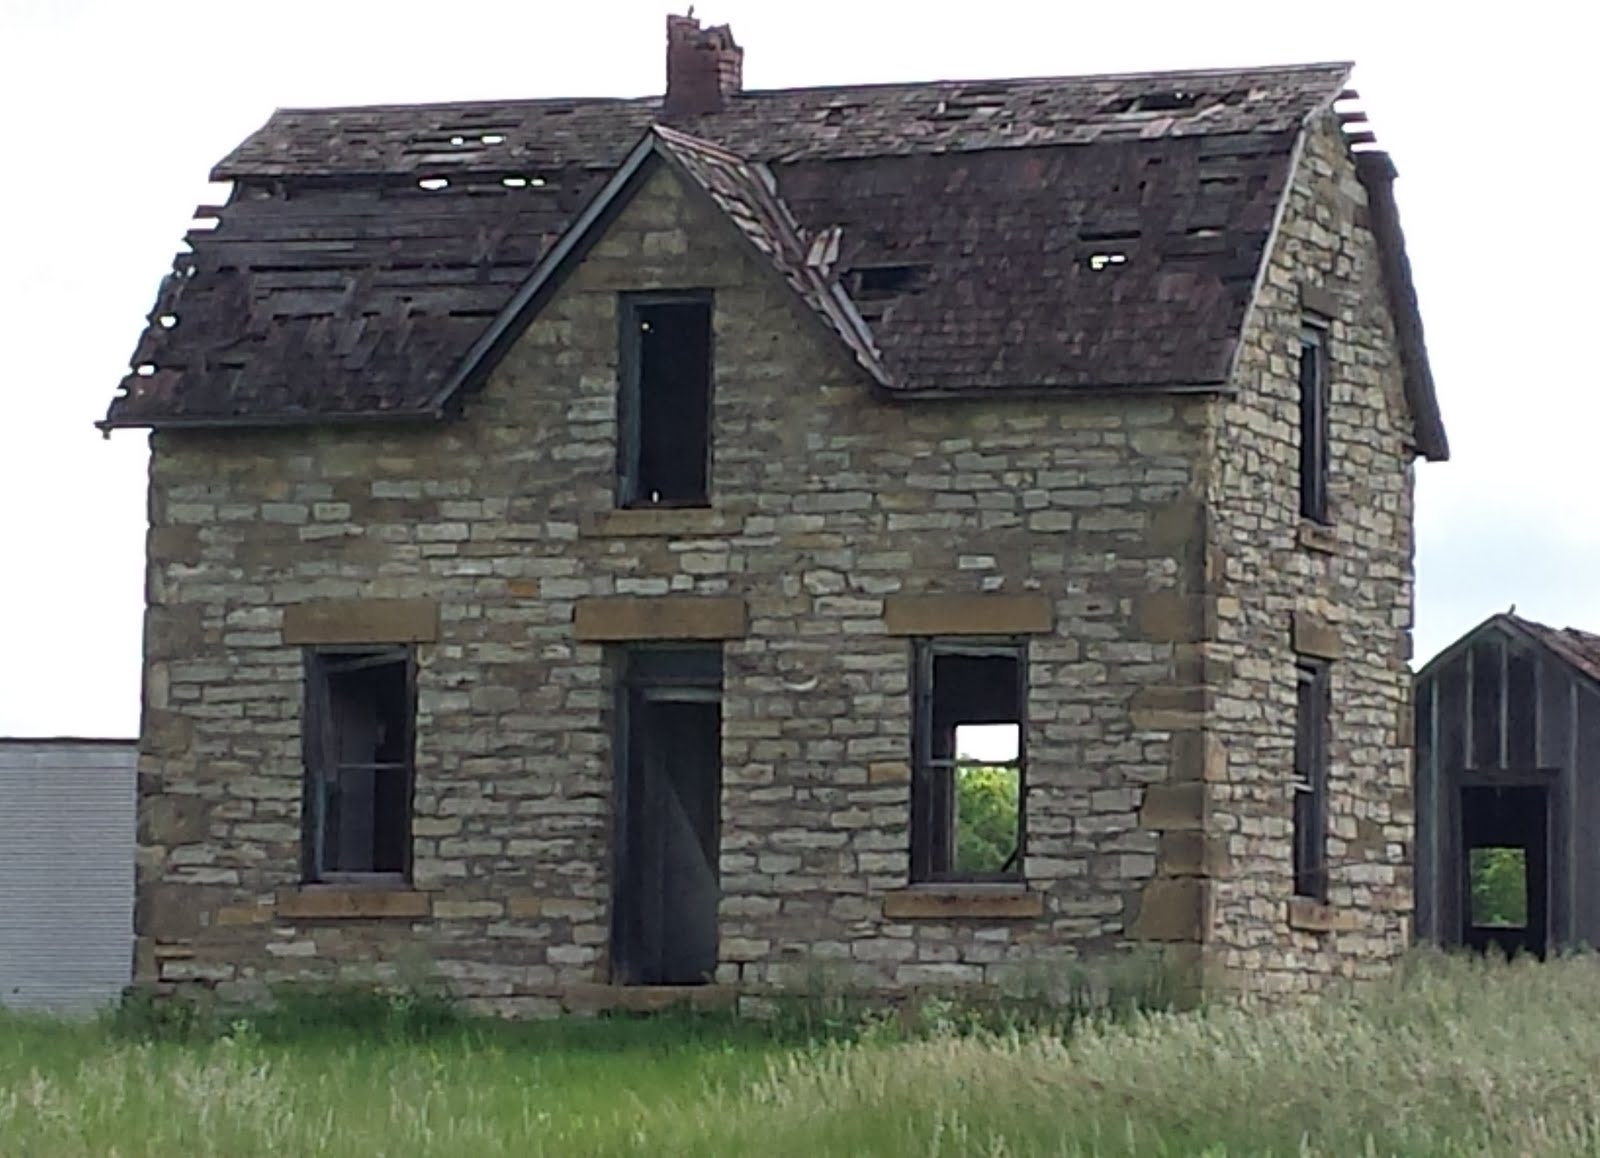 We Passed This Old Abandoned Stone Farmhouse Along The Way Its Sad To See Beautiful Structures Like Slowly Crumbling And Falling Down